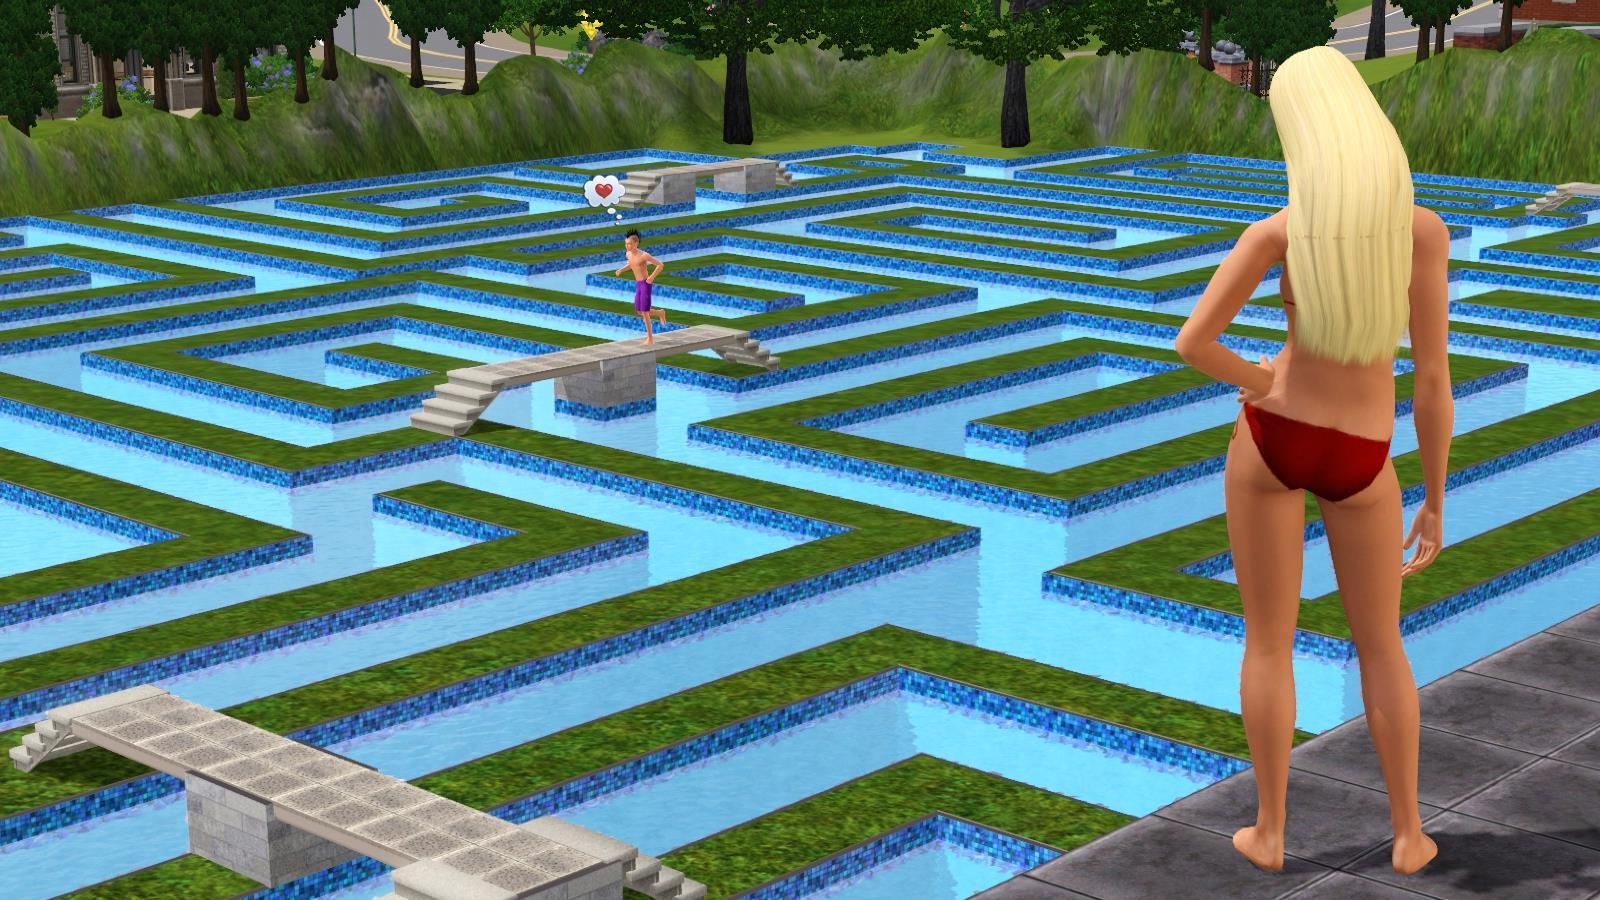 Sims x rated mod nudes movie